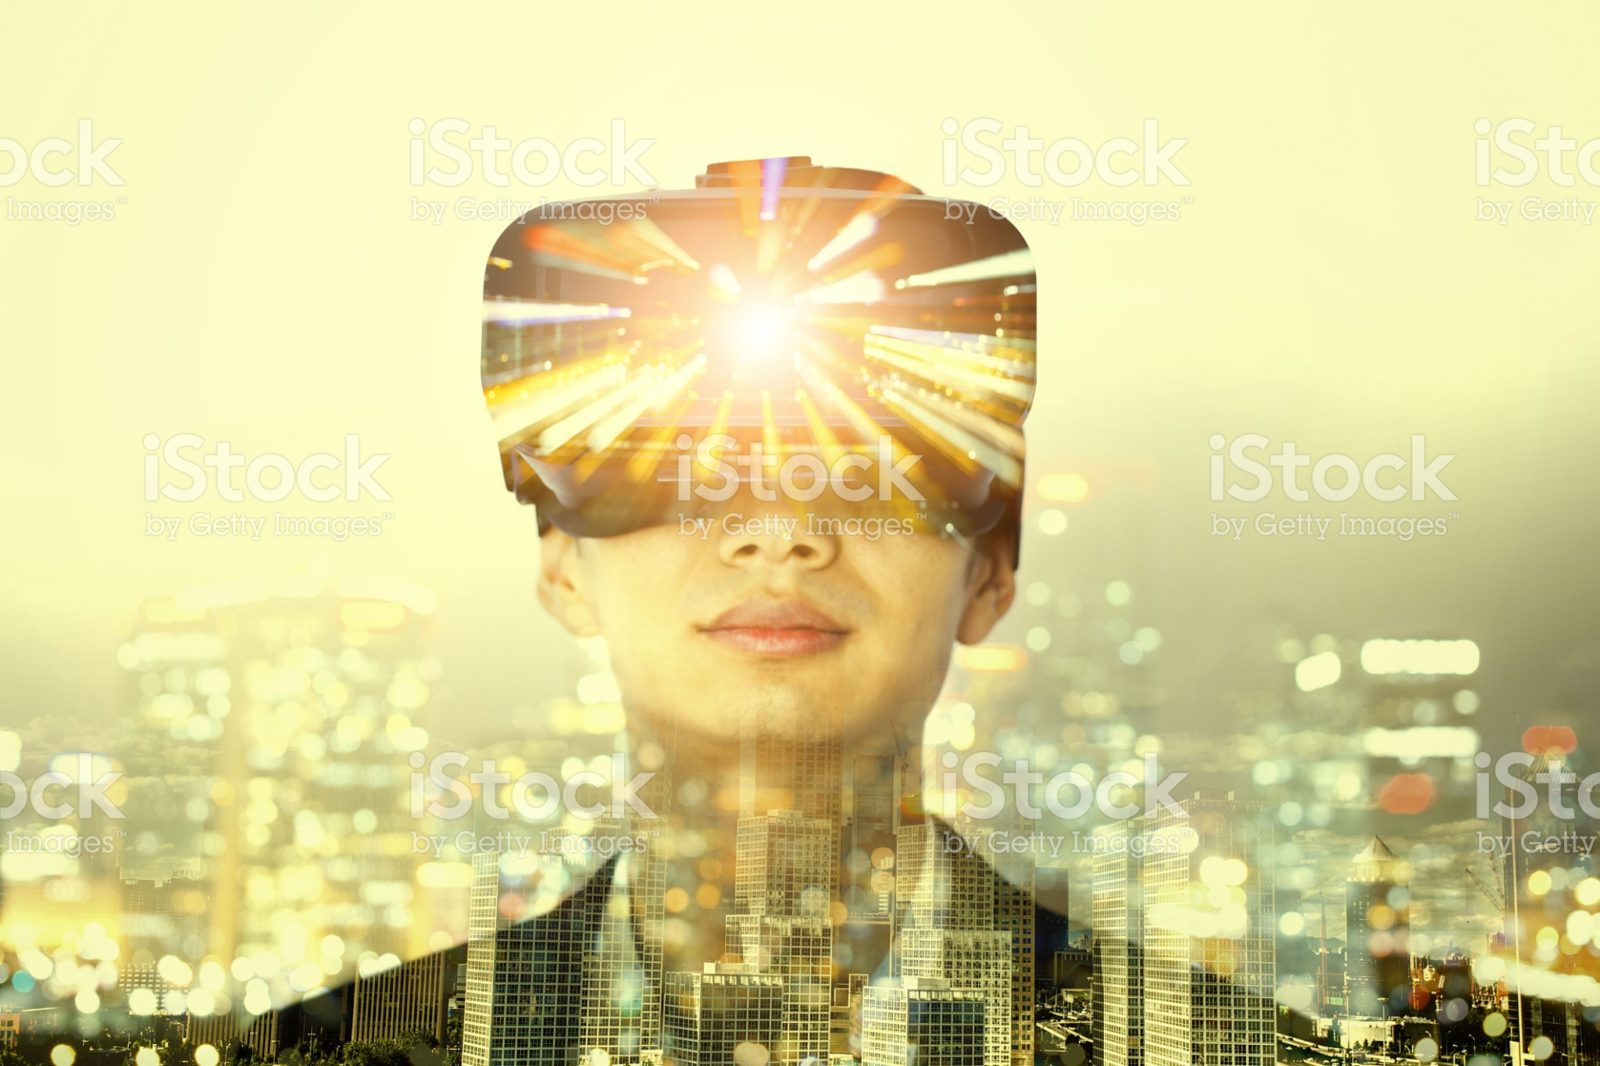 Person in VR headset overlaid with a cityscape